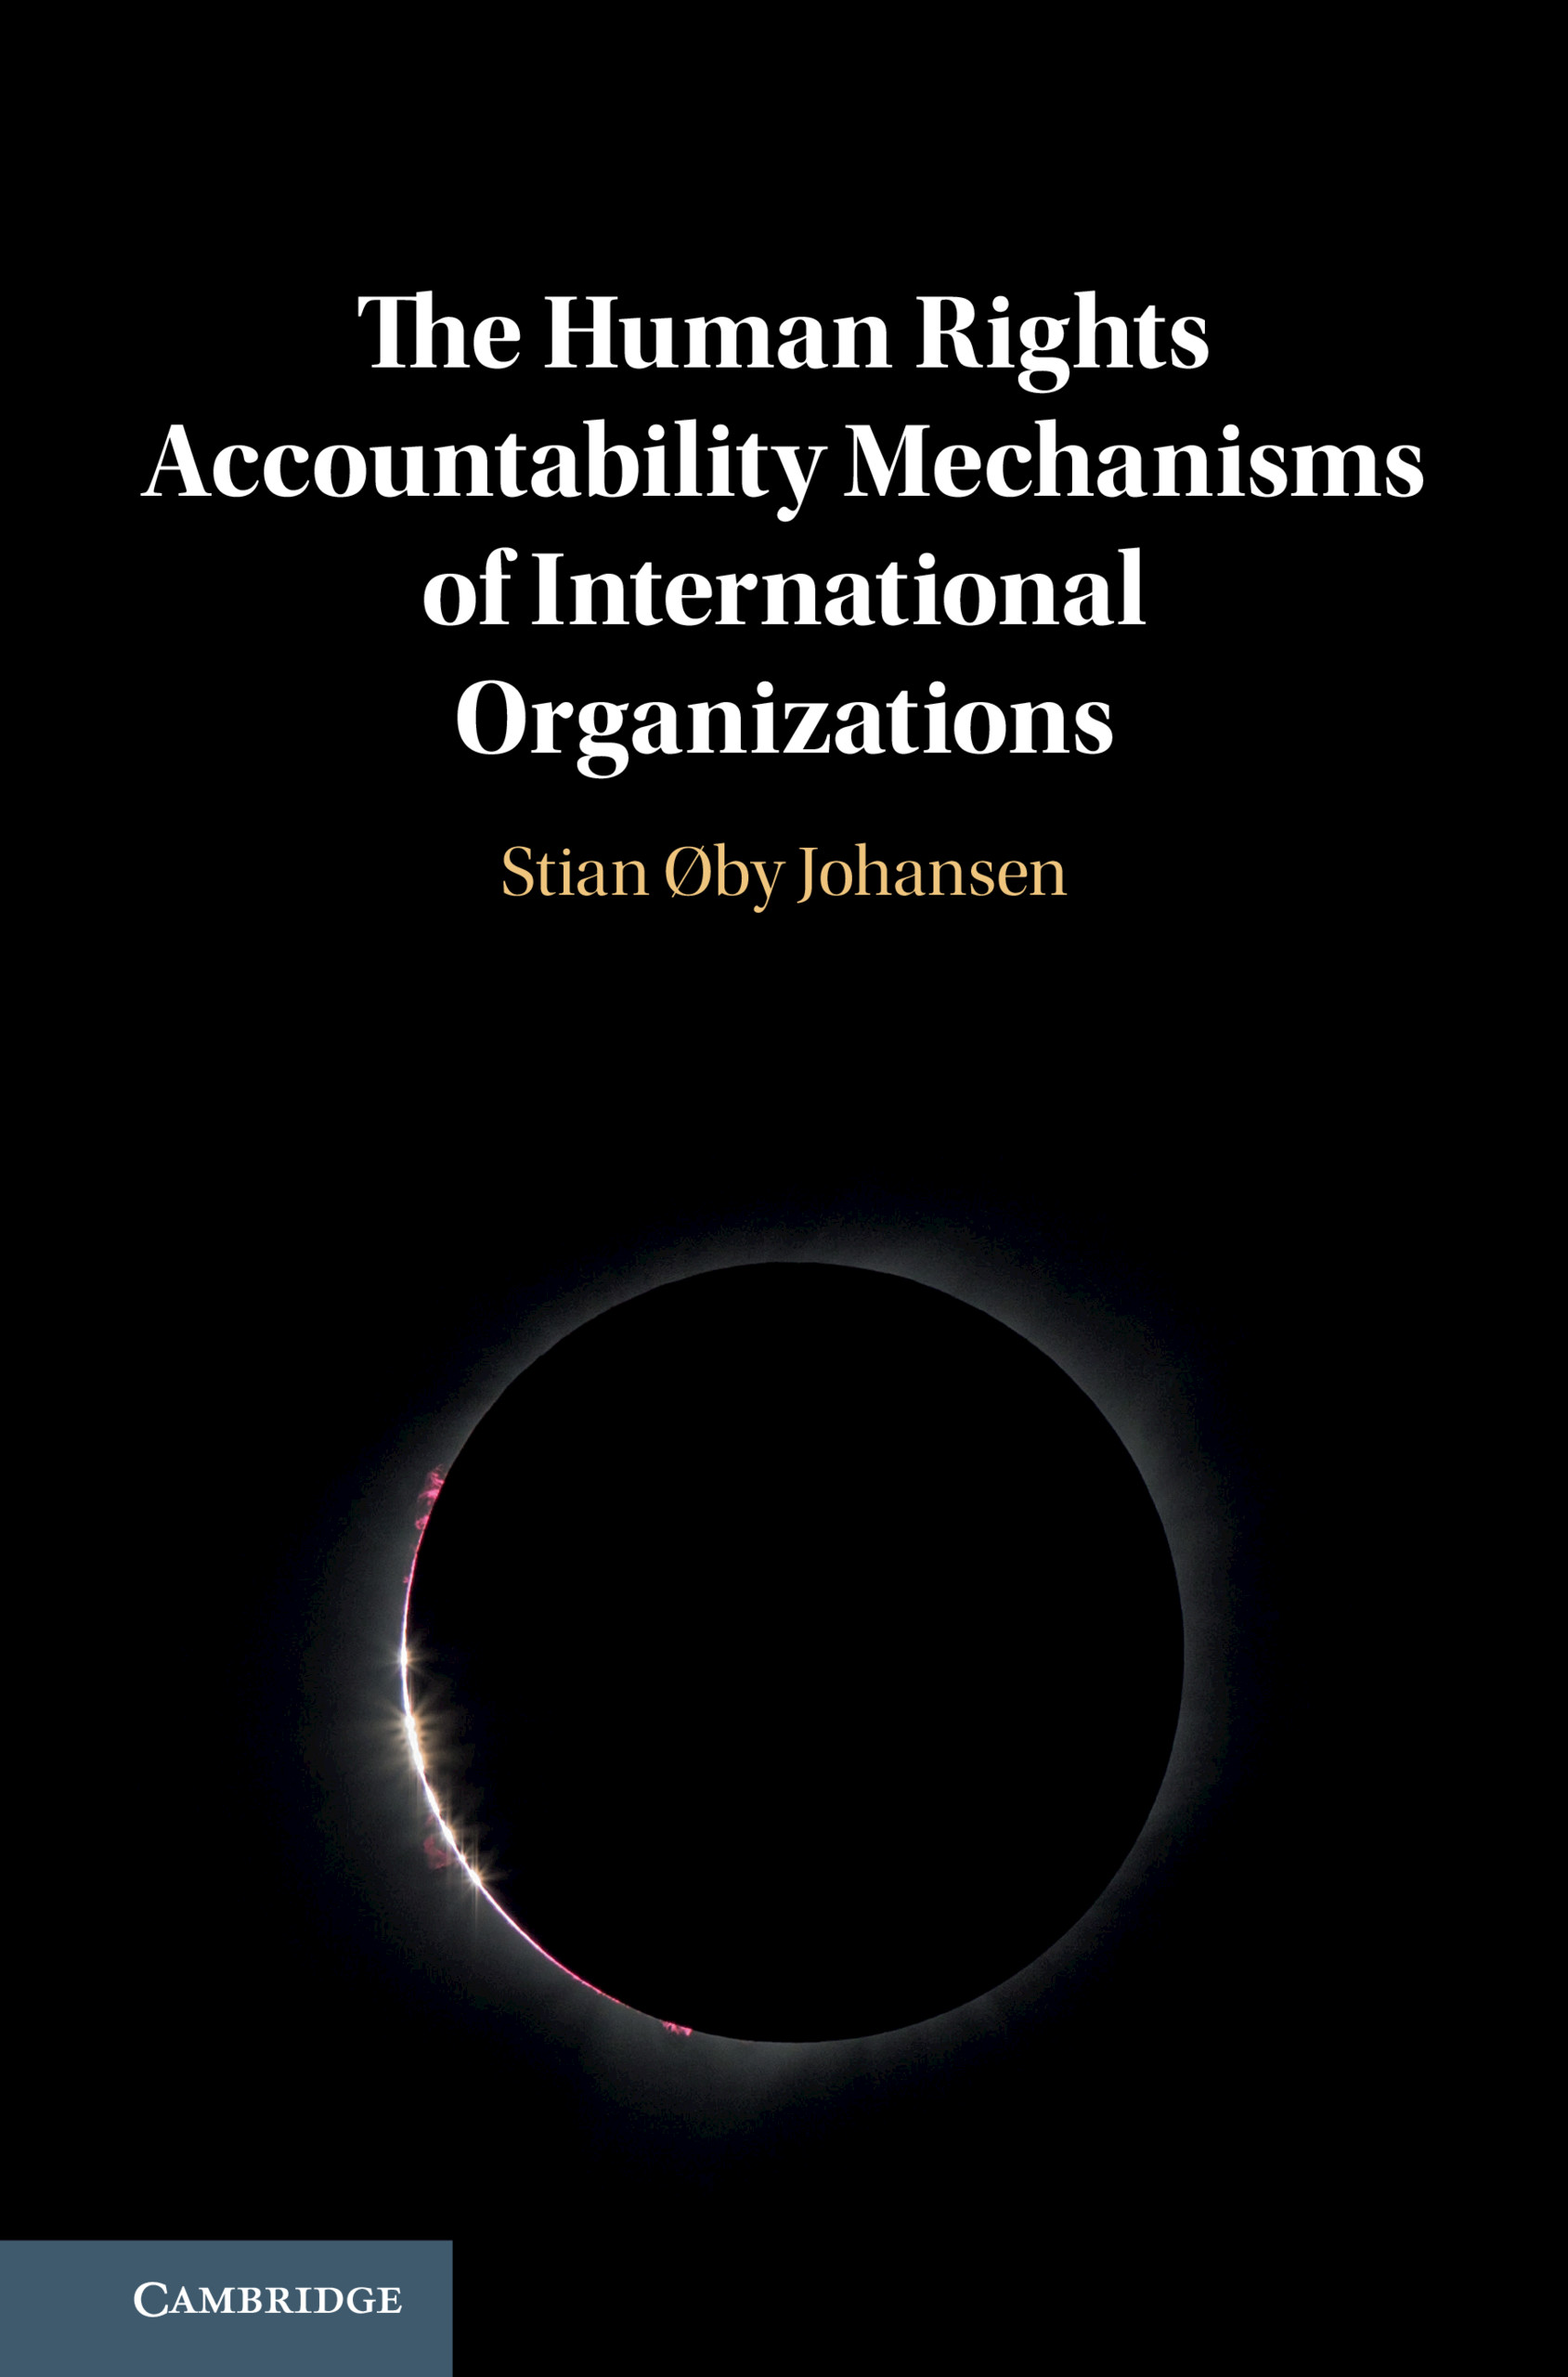 Interested in the accountability of IOs? Read my book!